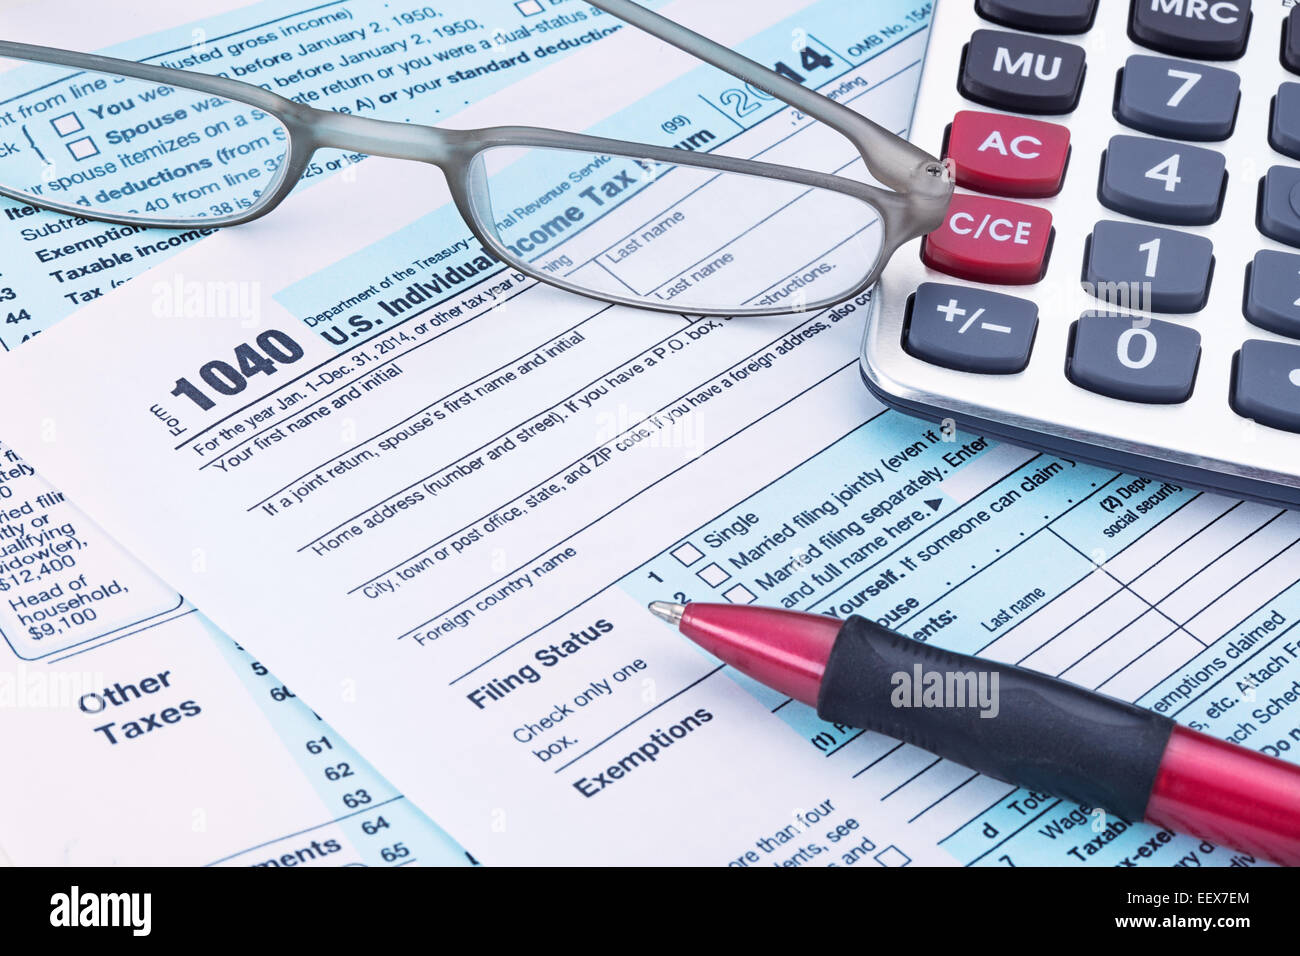 Form 1040 Stock Photos & Form 1040 Stock Images - Alamy